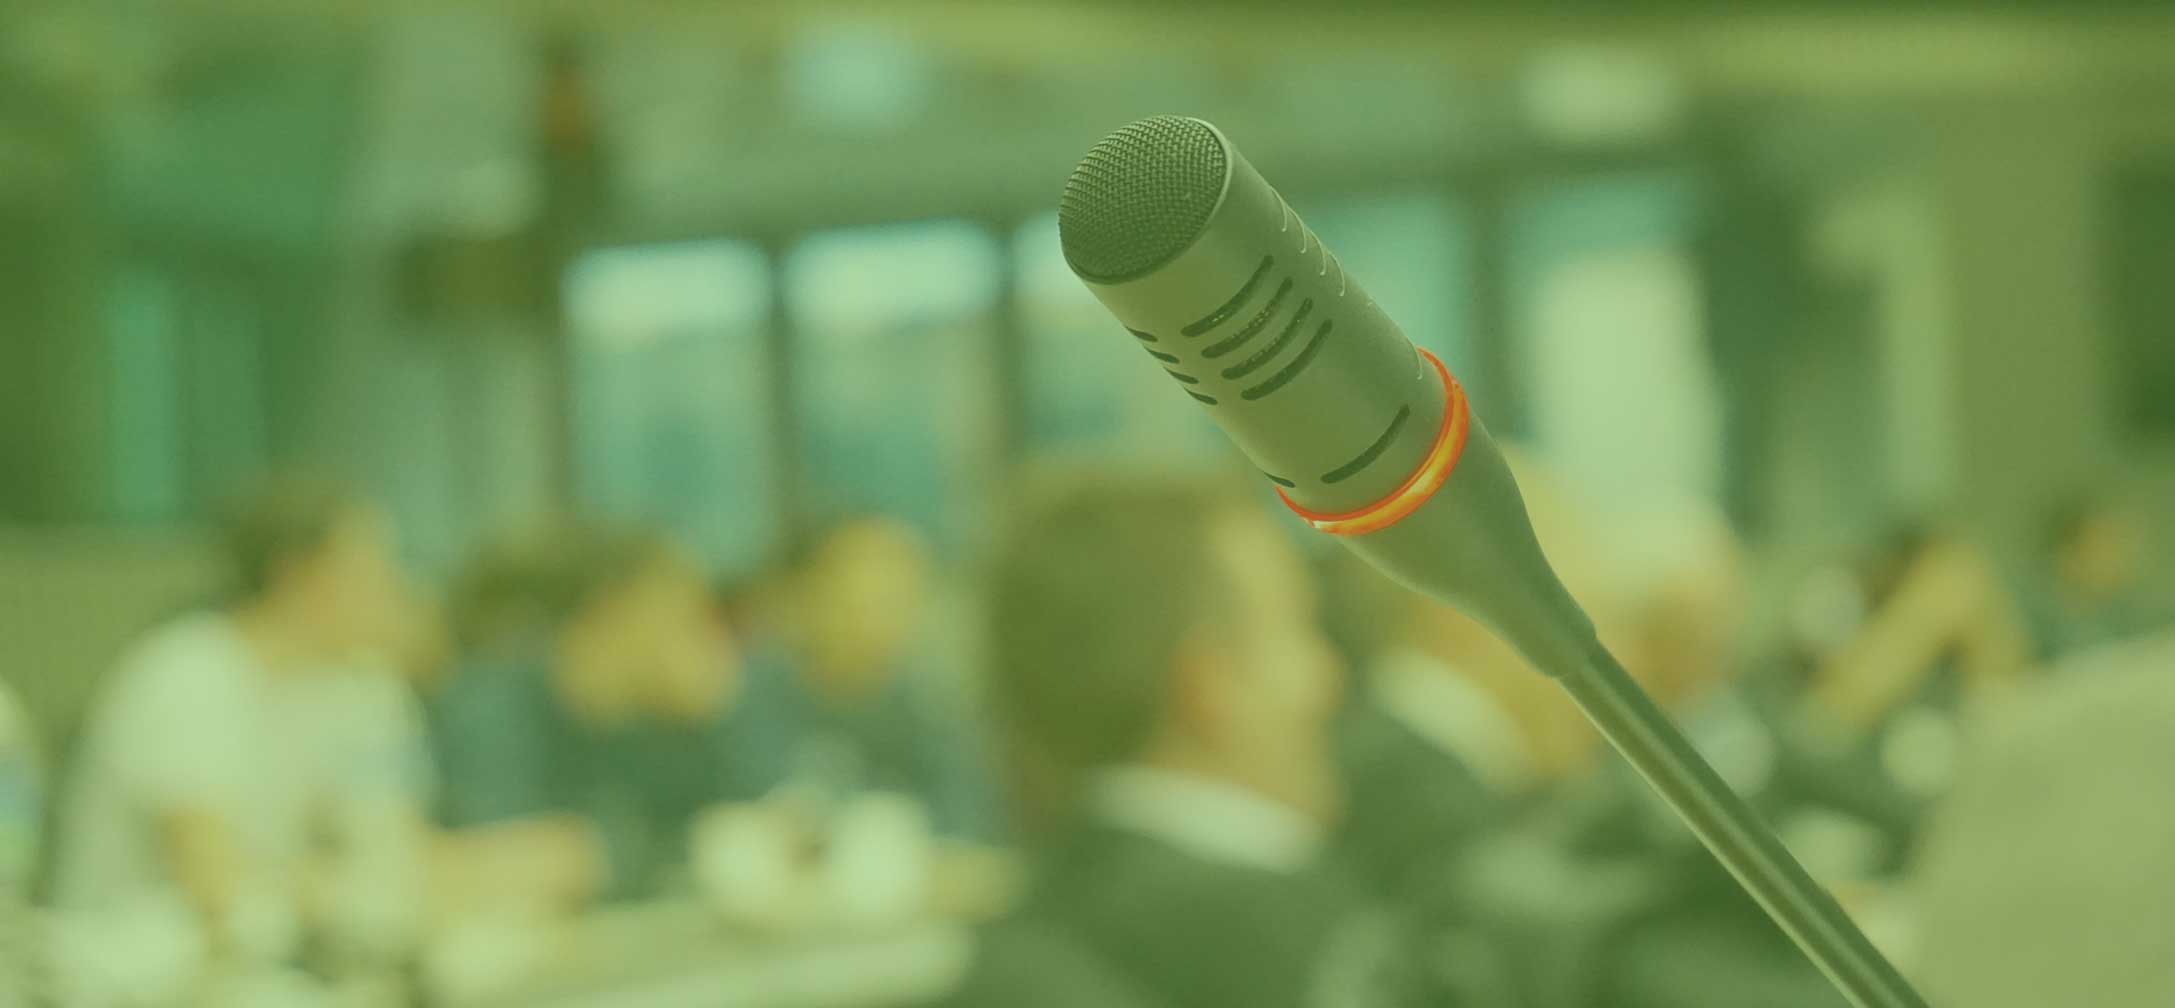 Microphone in front of conference